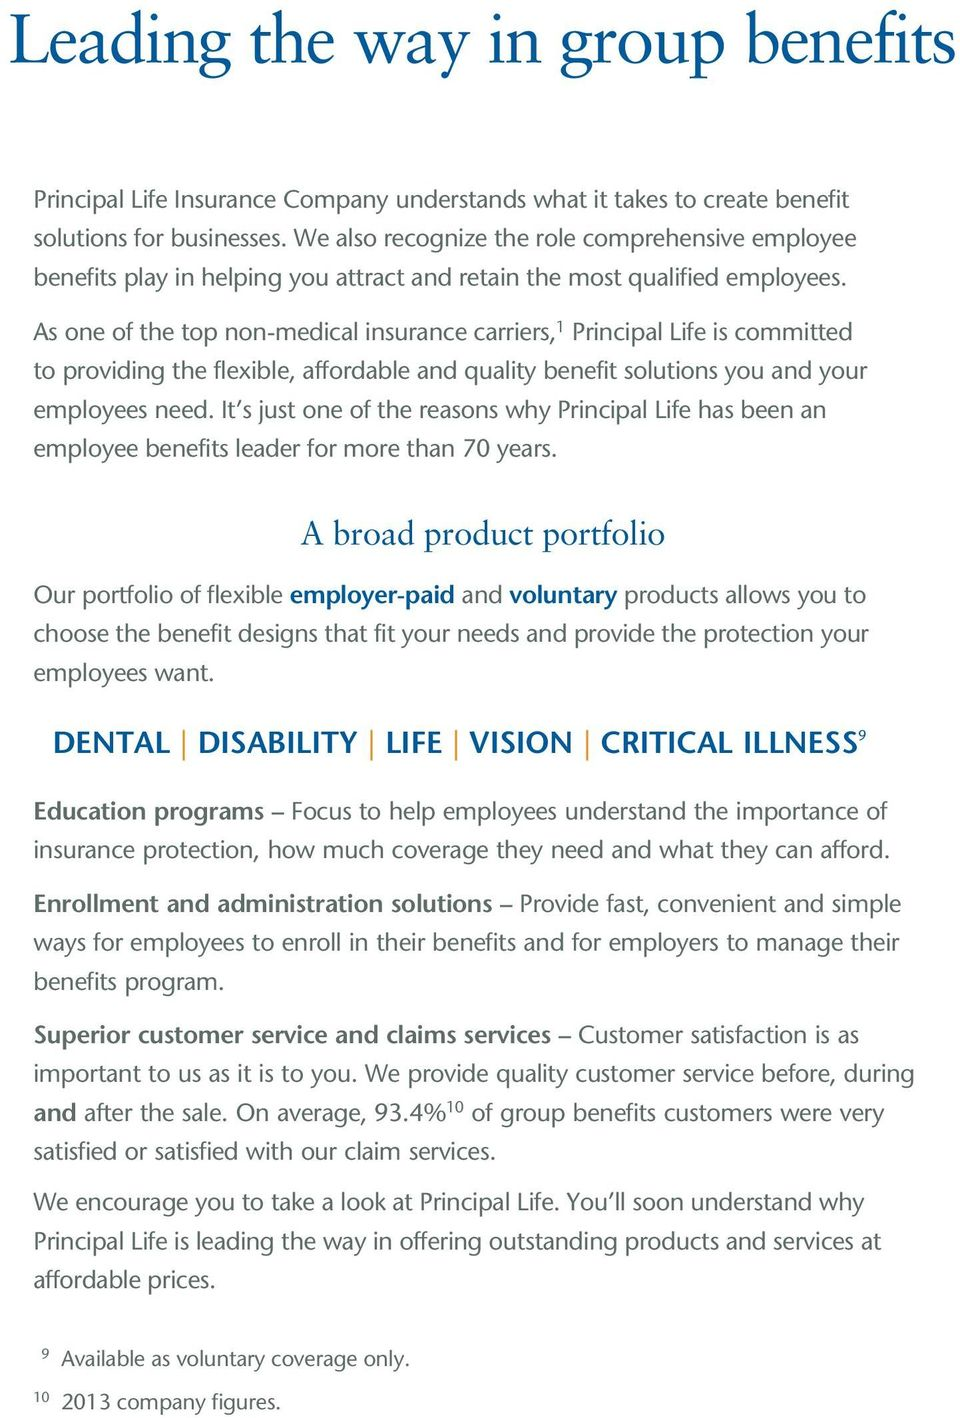 As one of the top non-medical insurance carriers, 1 Principal Life is committed to providing the flexible, affordable and quality benefit solutions you and your employees need.